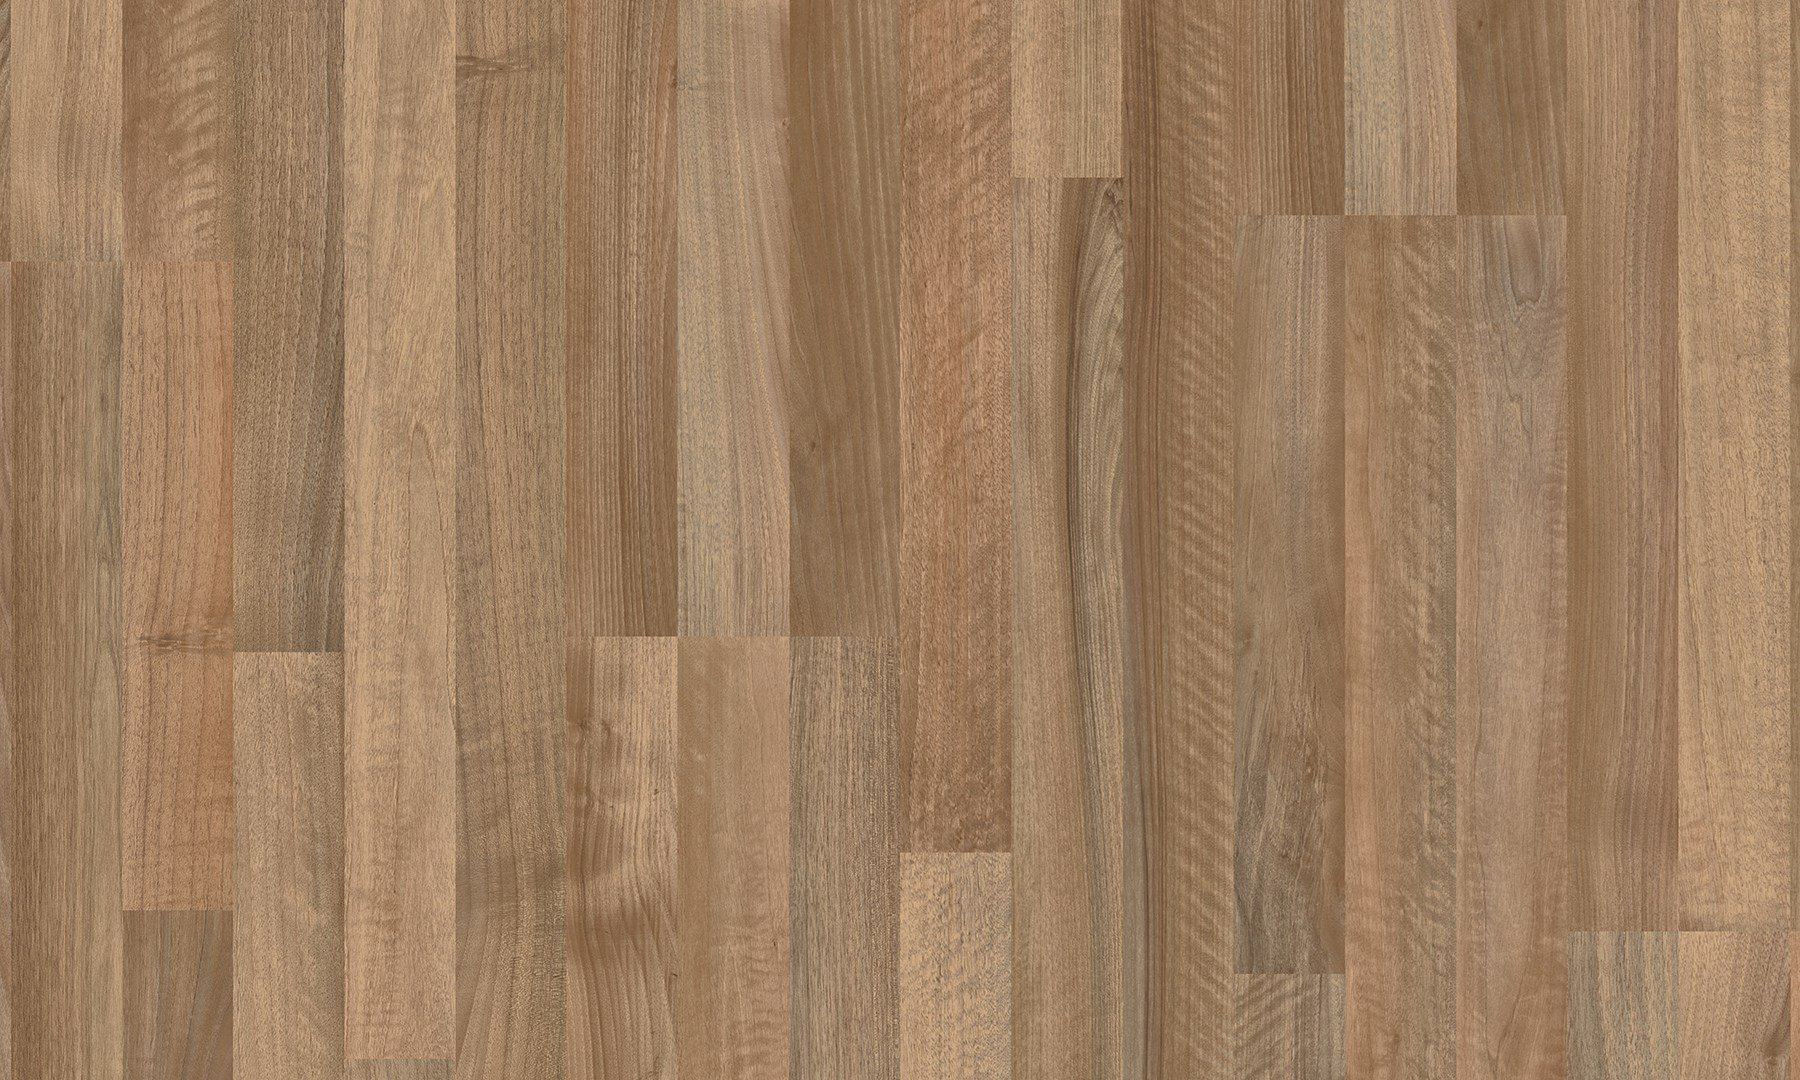 Laminate flooring soft walnut 3 strip by pergo for Soft laminate flooring